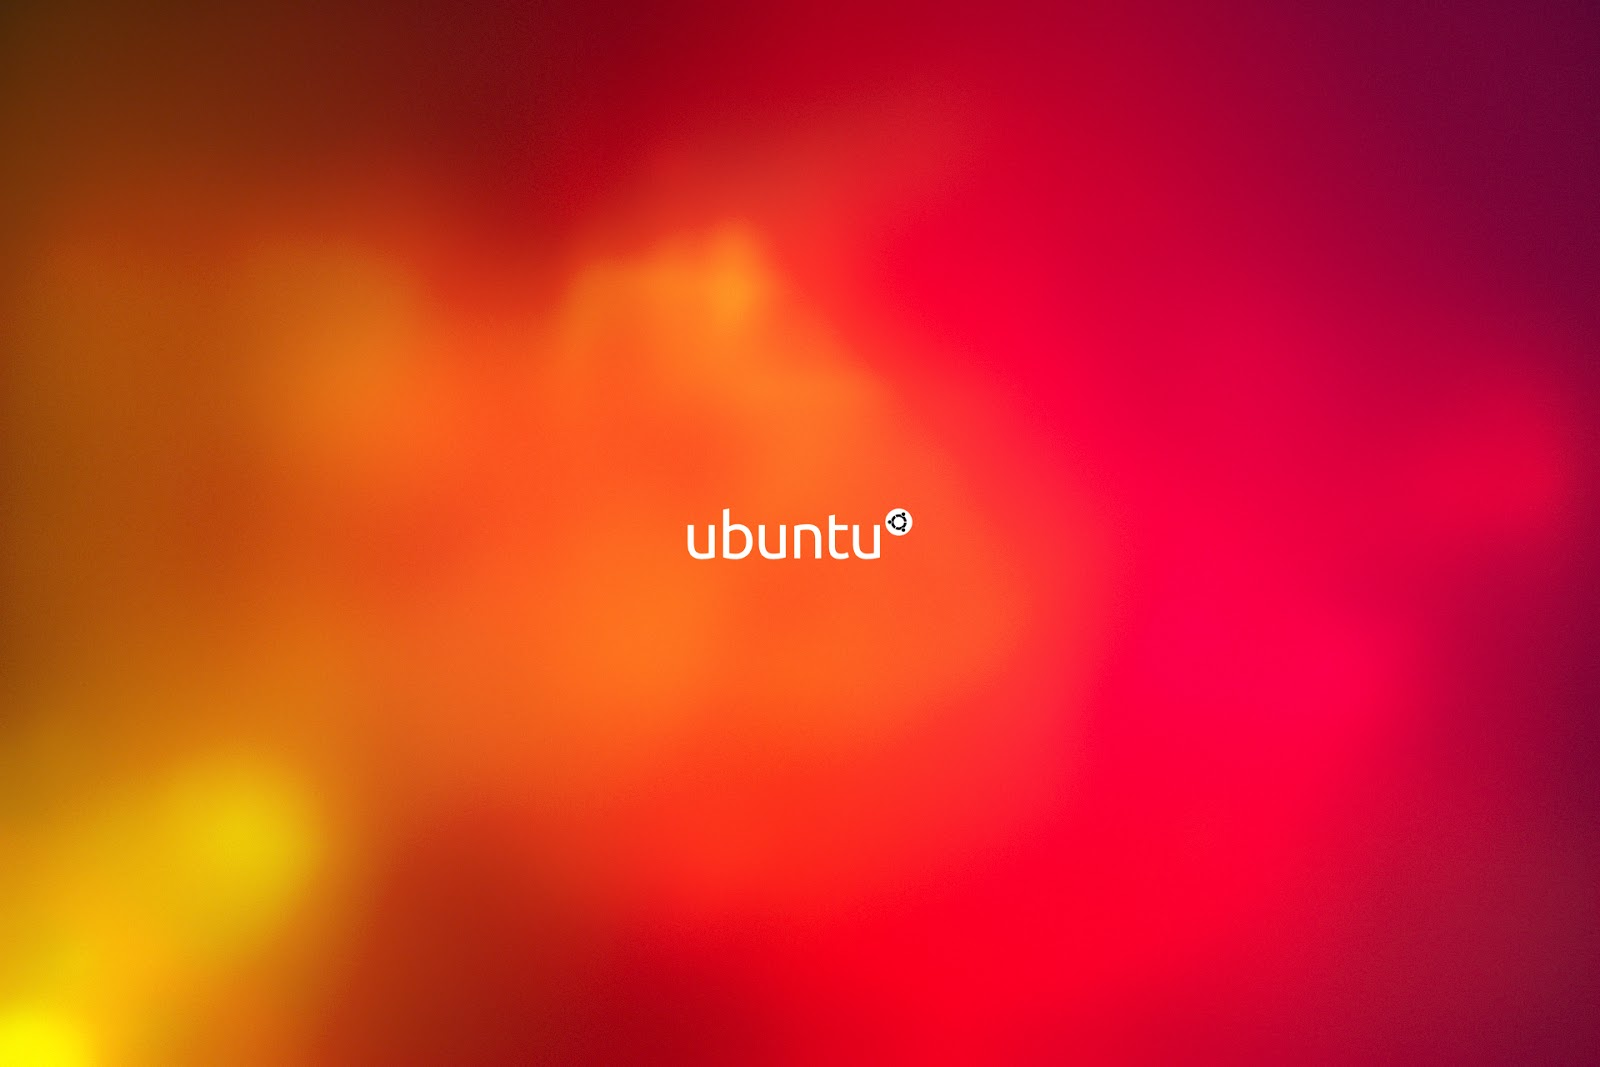 World Of Linux Classic Ubuntu HD Wallpaper Collection 1600x1067